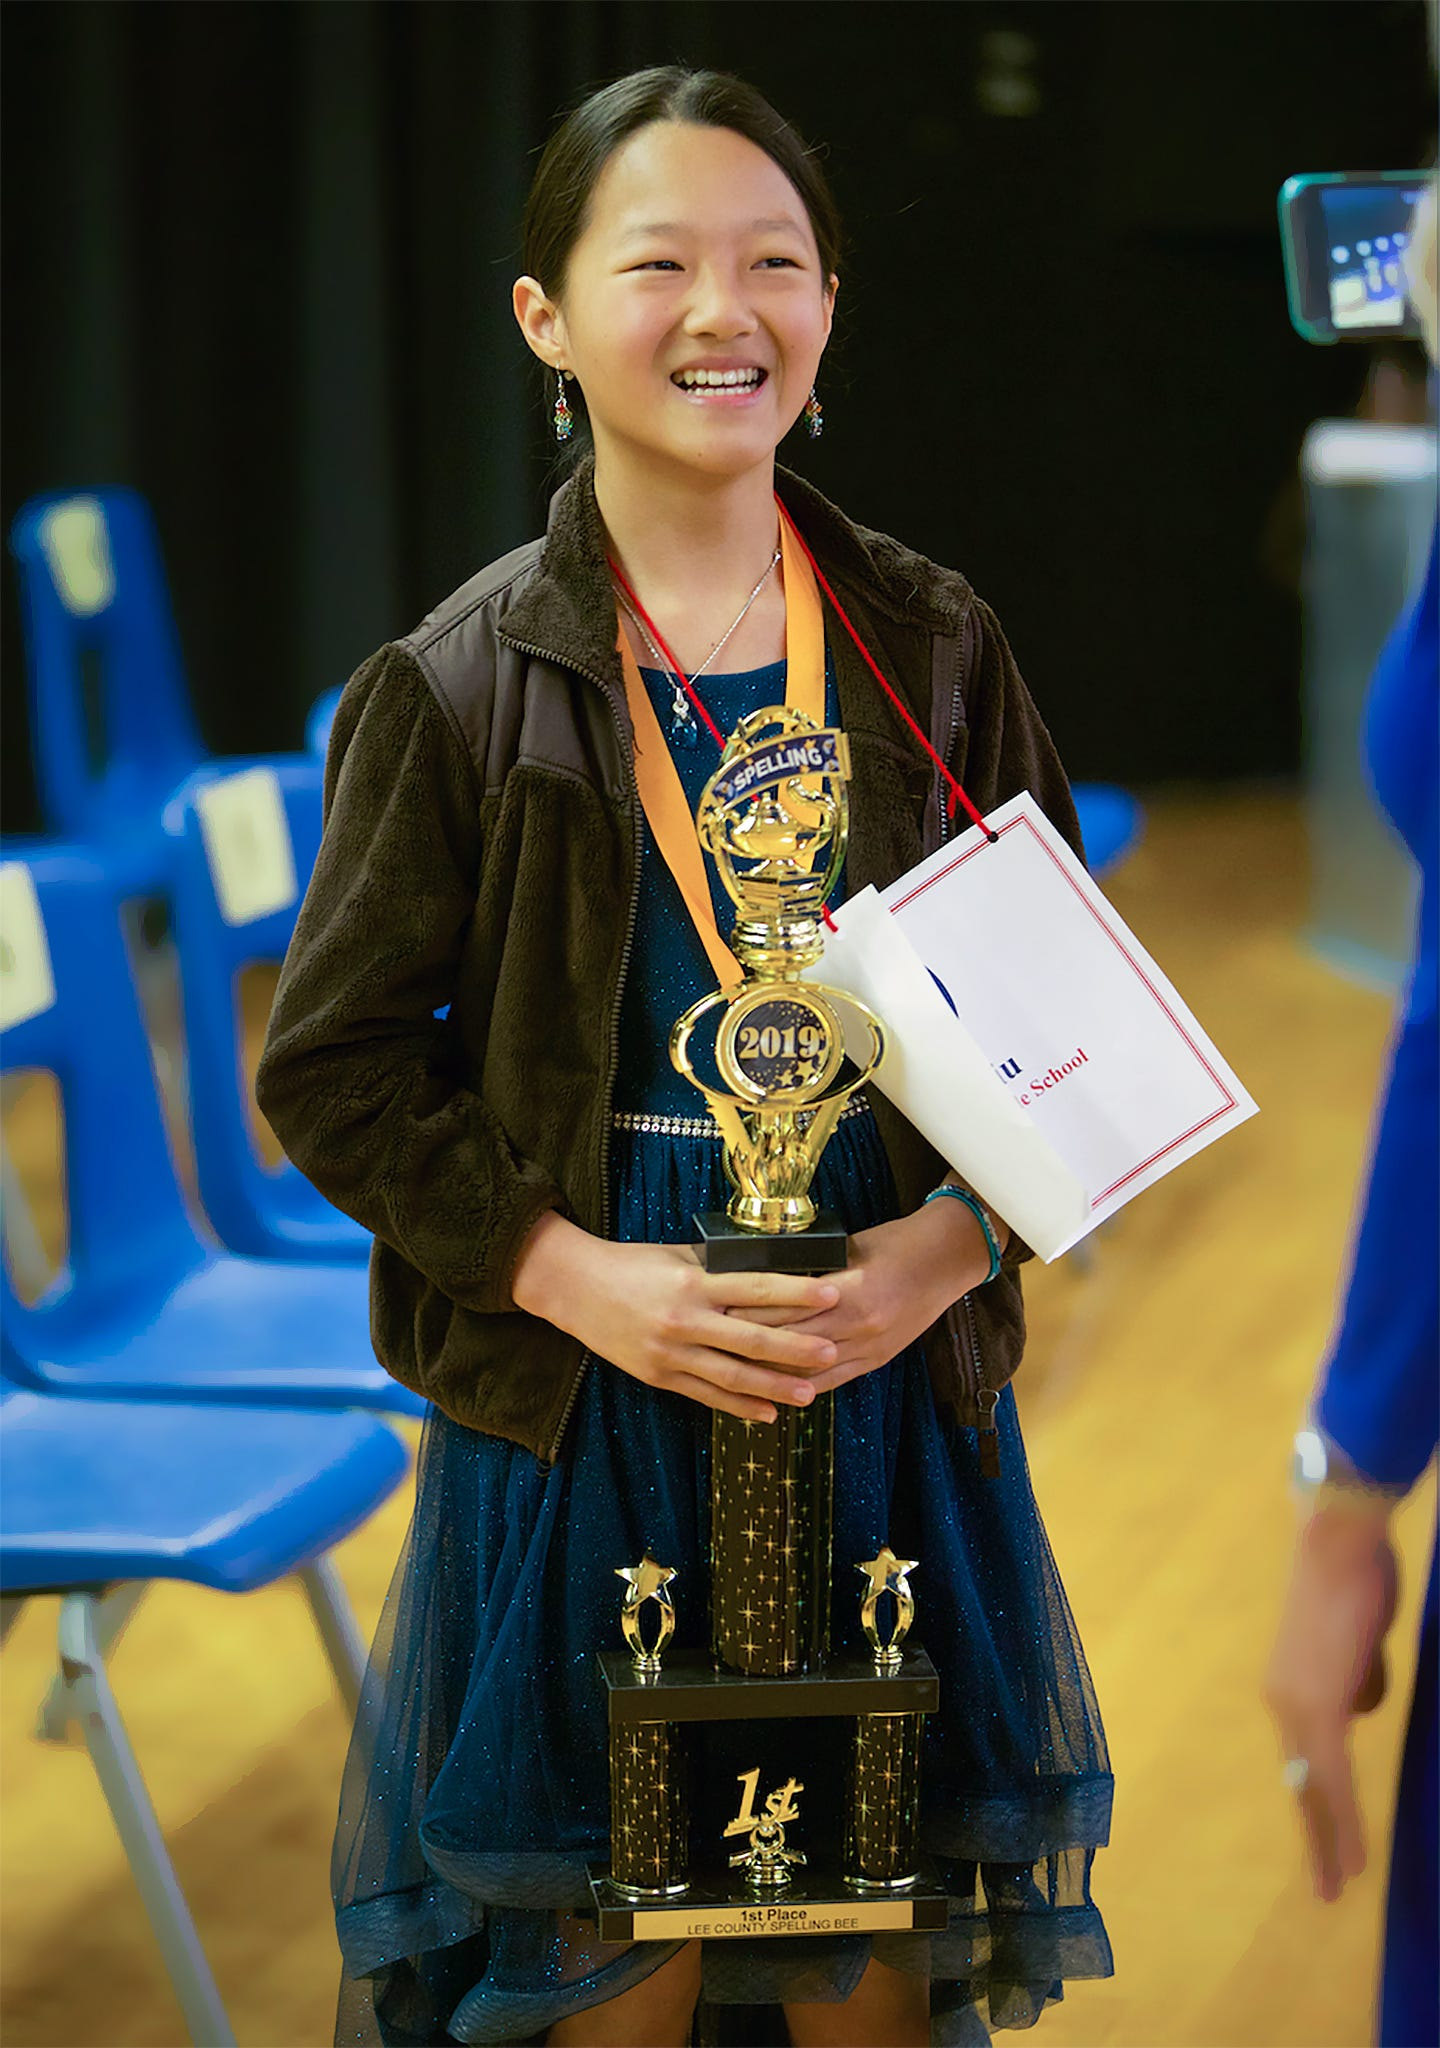 Isabel Liu celebrates winning the Lee County Spelling Bee on Wednesday at Three Oaks Middle School in Fort Myers. Isabel attends Cypress Lake Middle School and advances to the National Spelling Bee in Washington D.C in May.